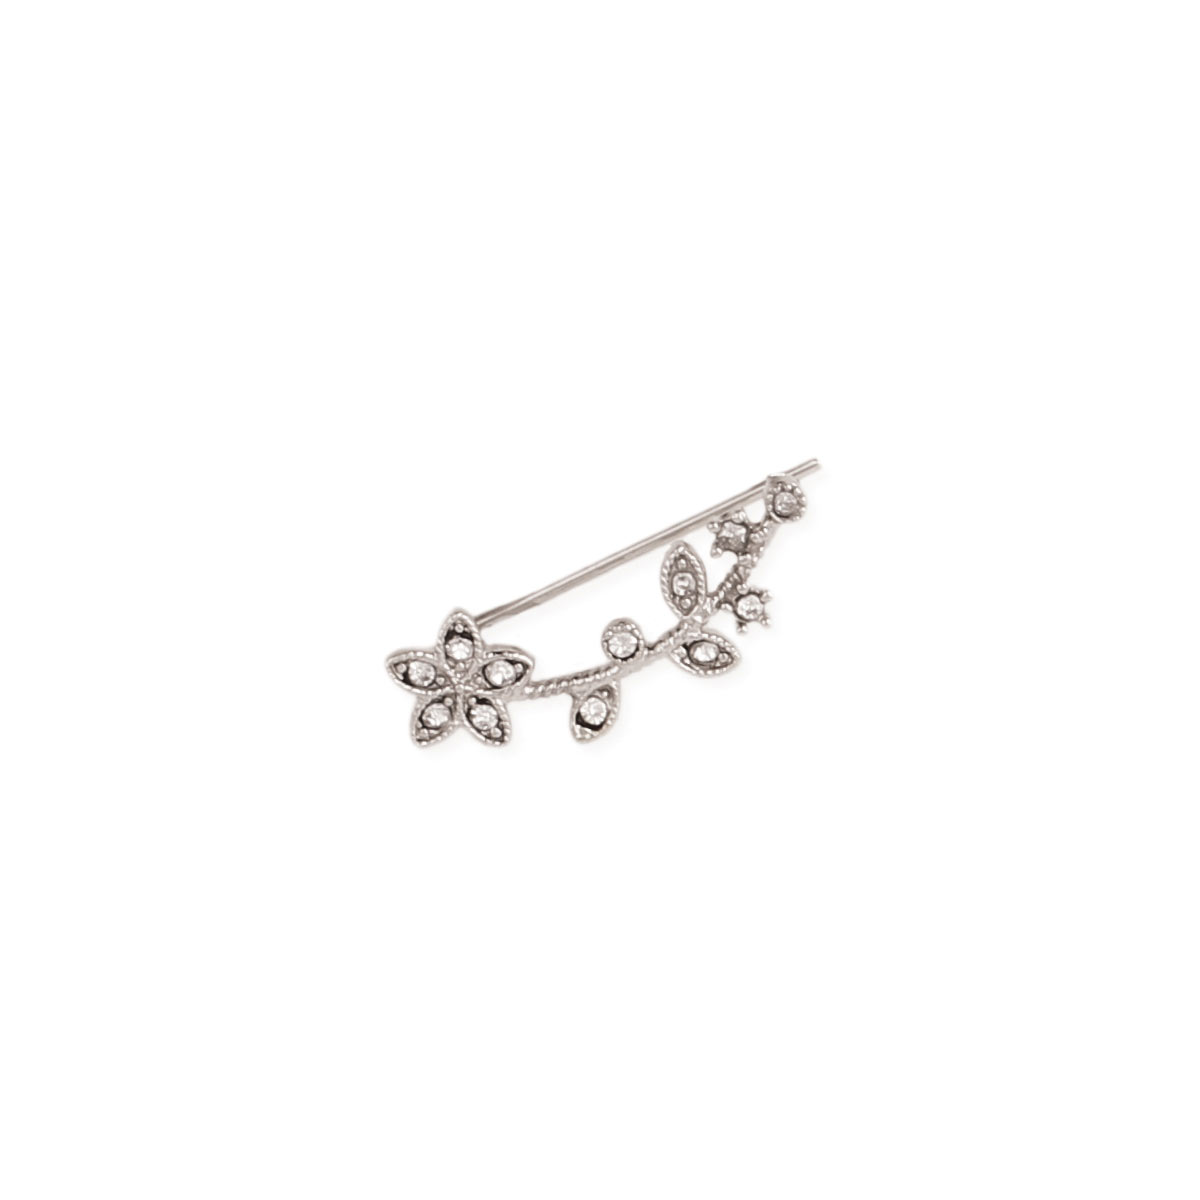 Silver & Crystal Flower Ear Climber